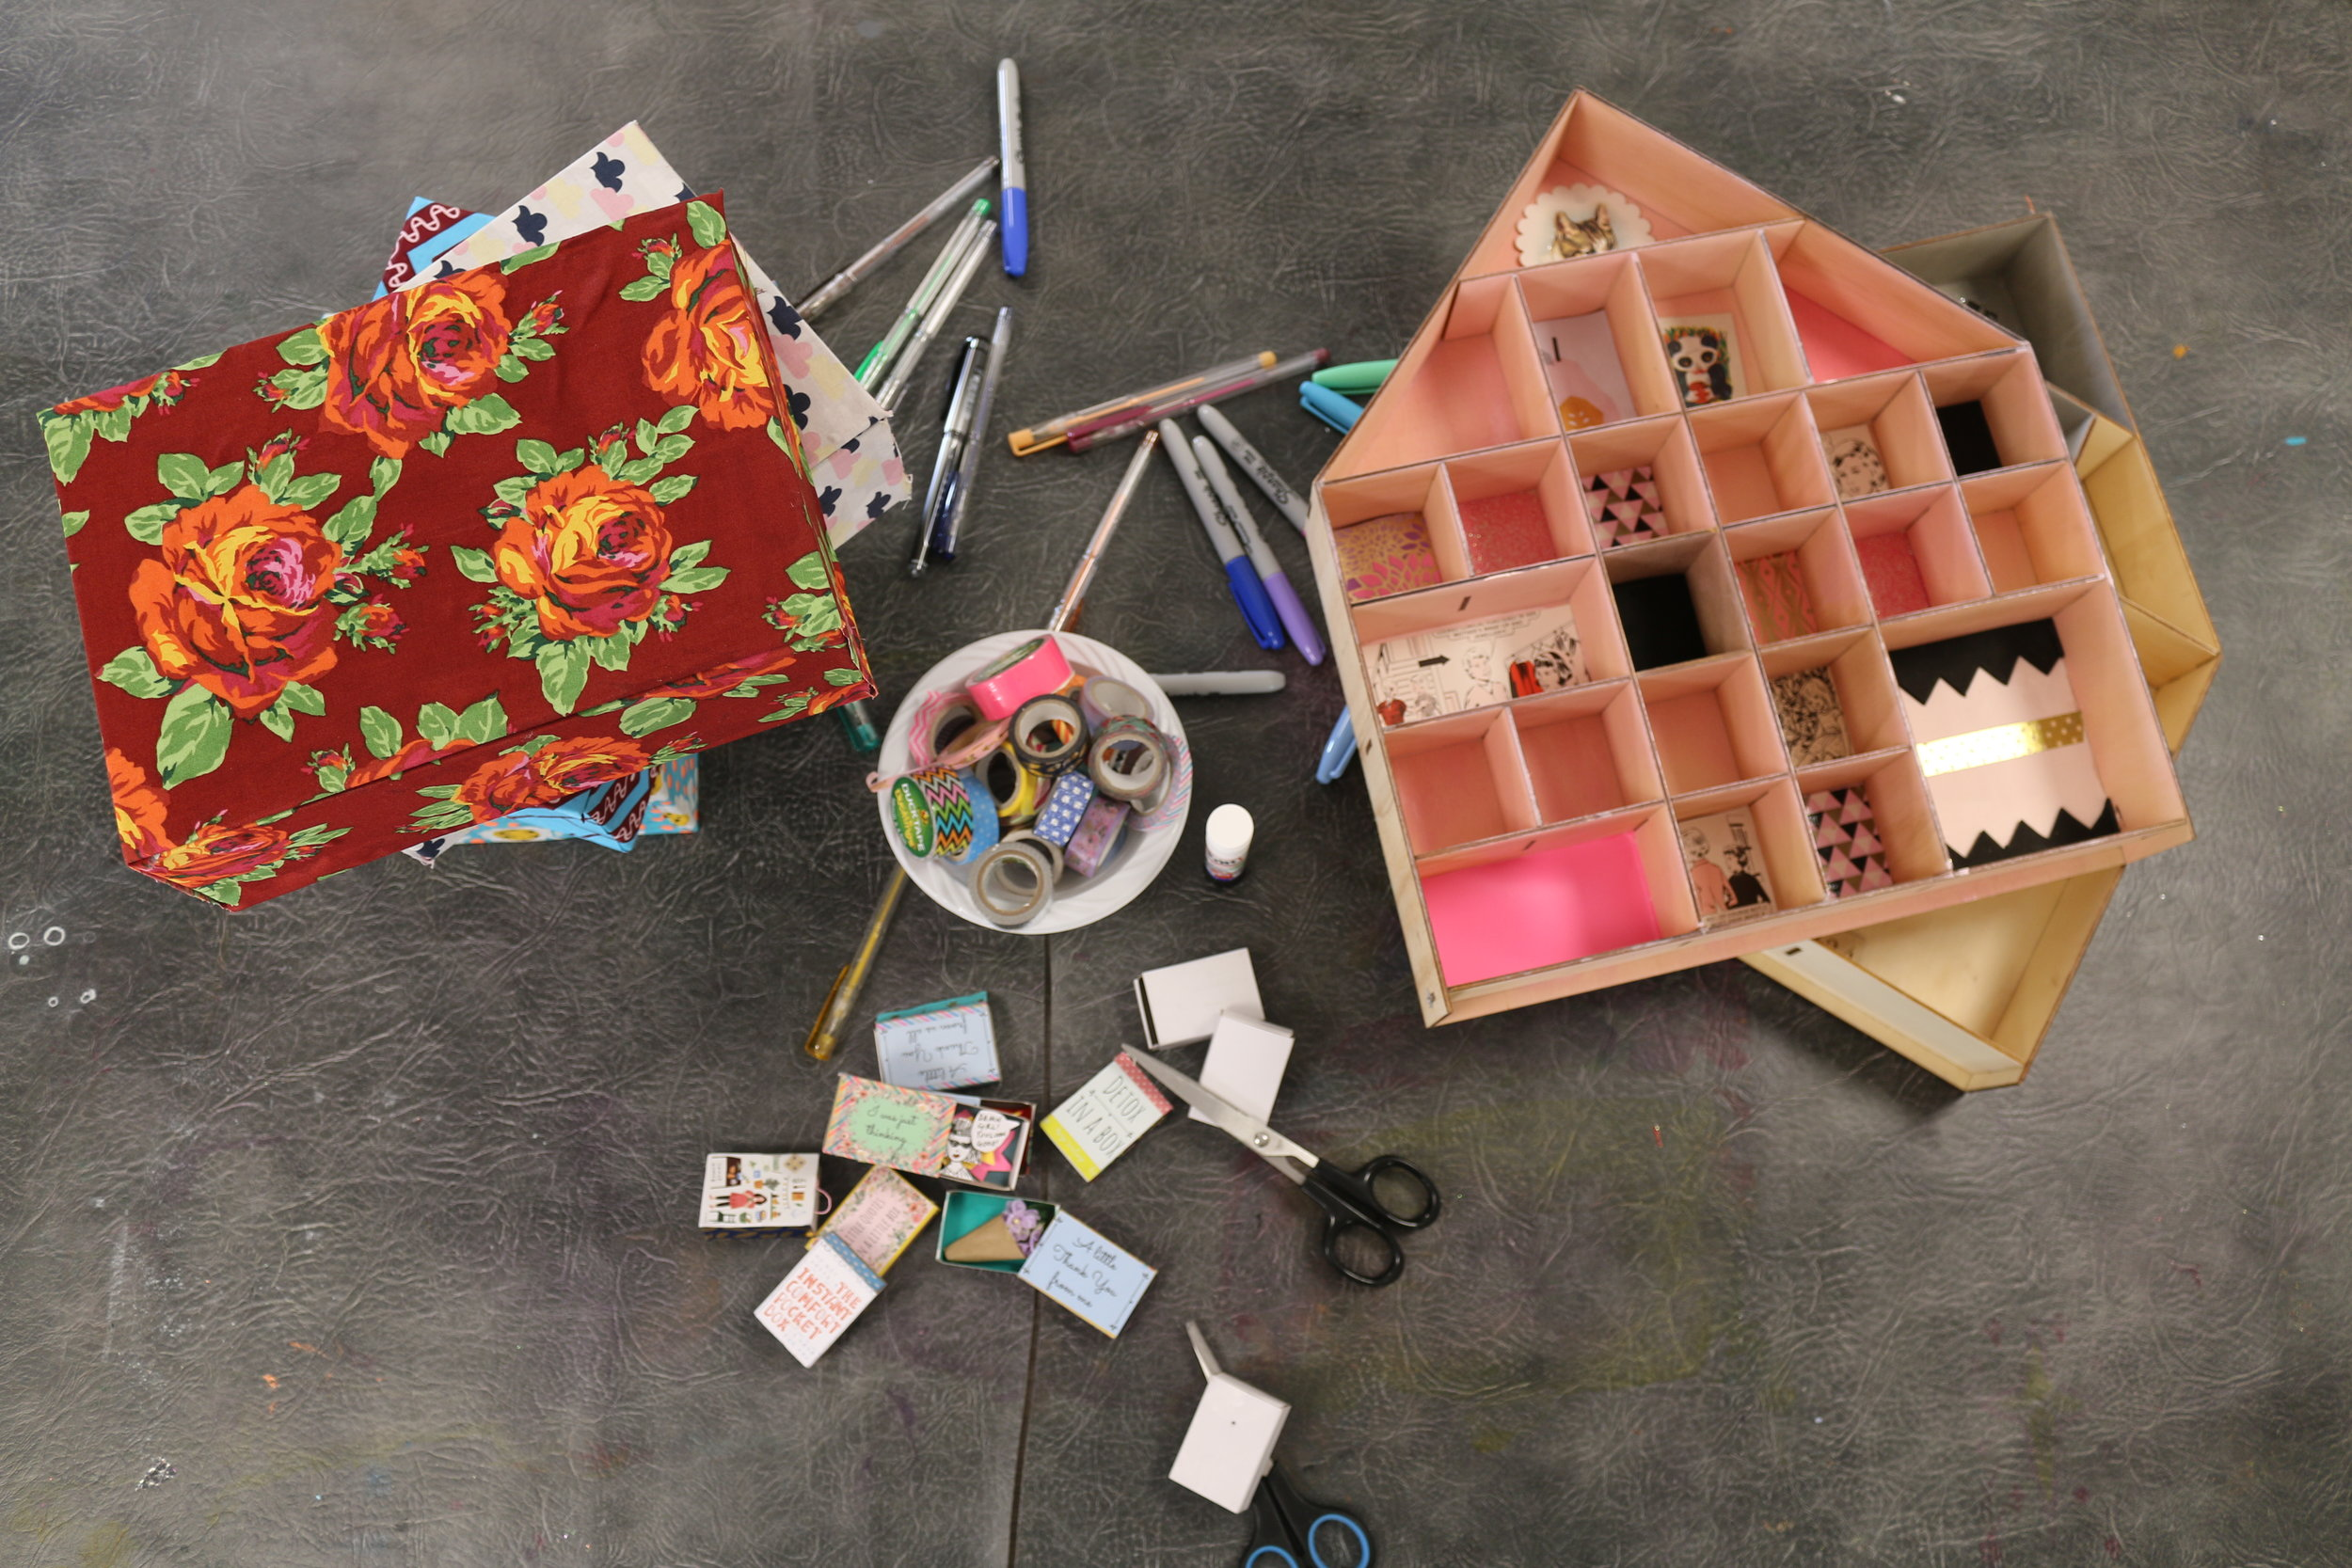 Our home craft sessions let you brighten up your home the way you want to without splashing cash!